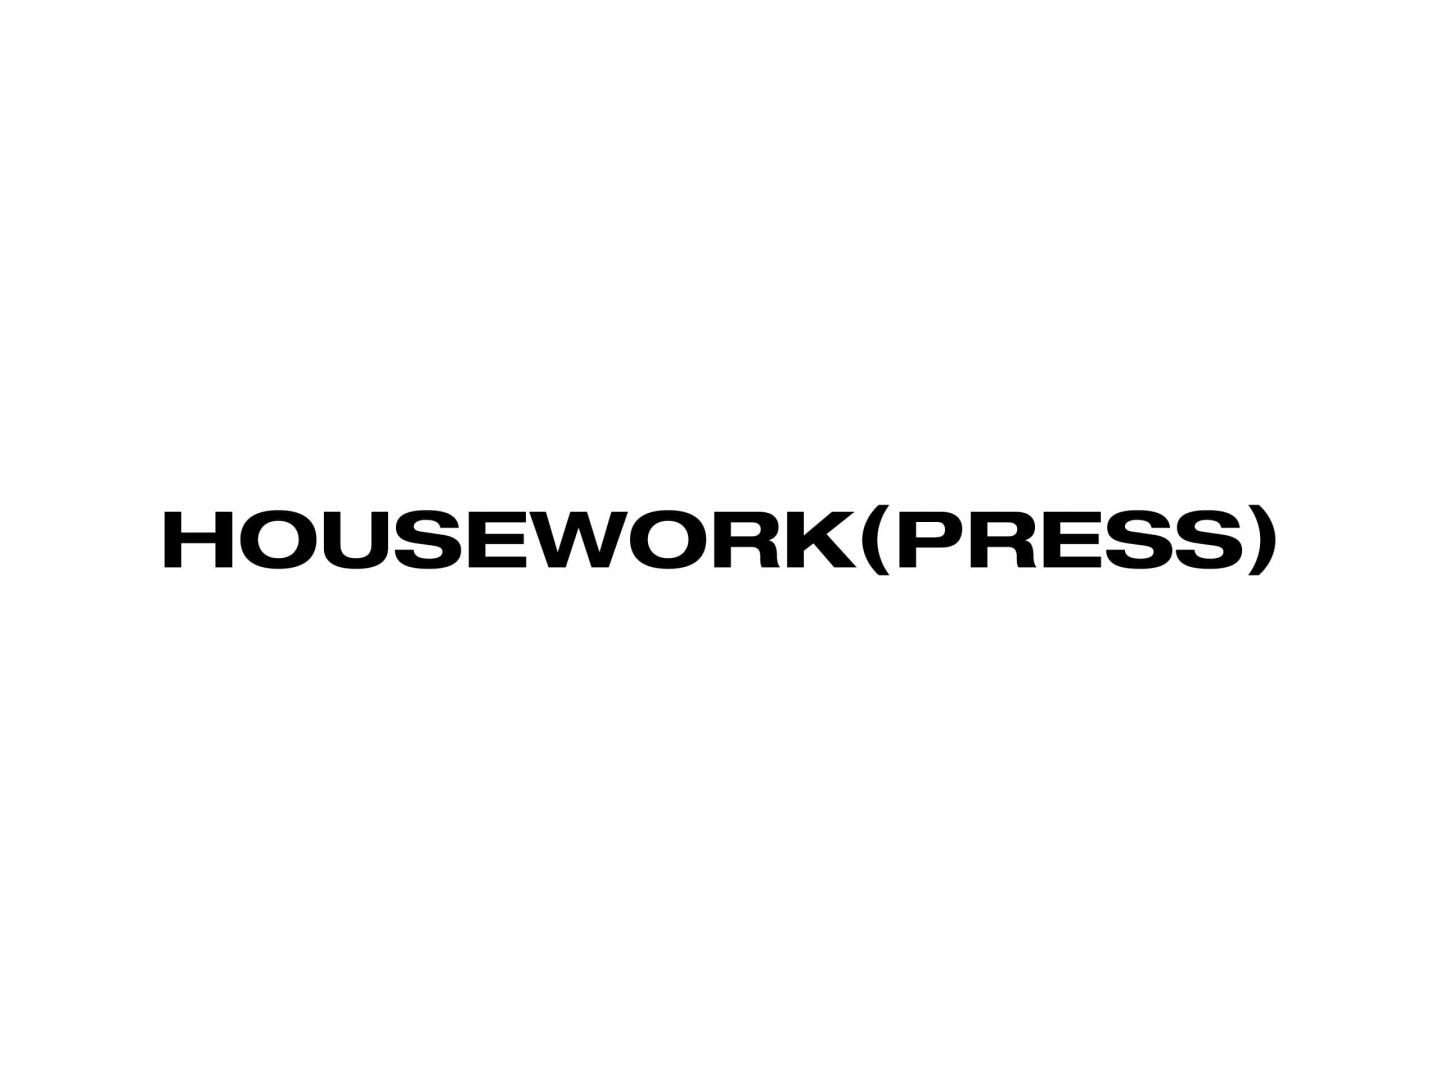 Zyxt_HouseworkPress_Identity-Design_1